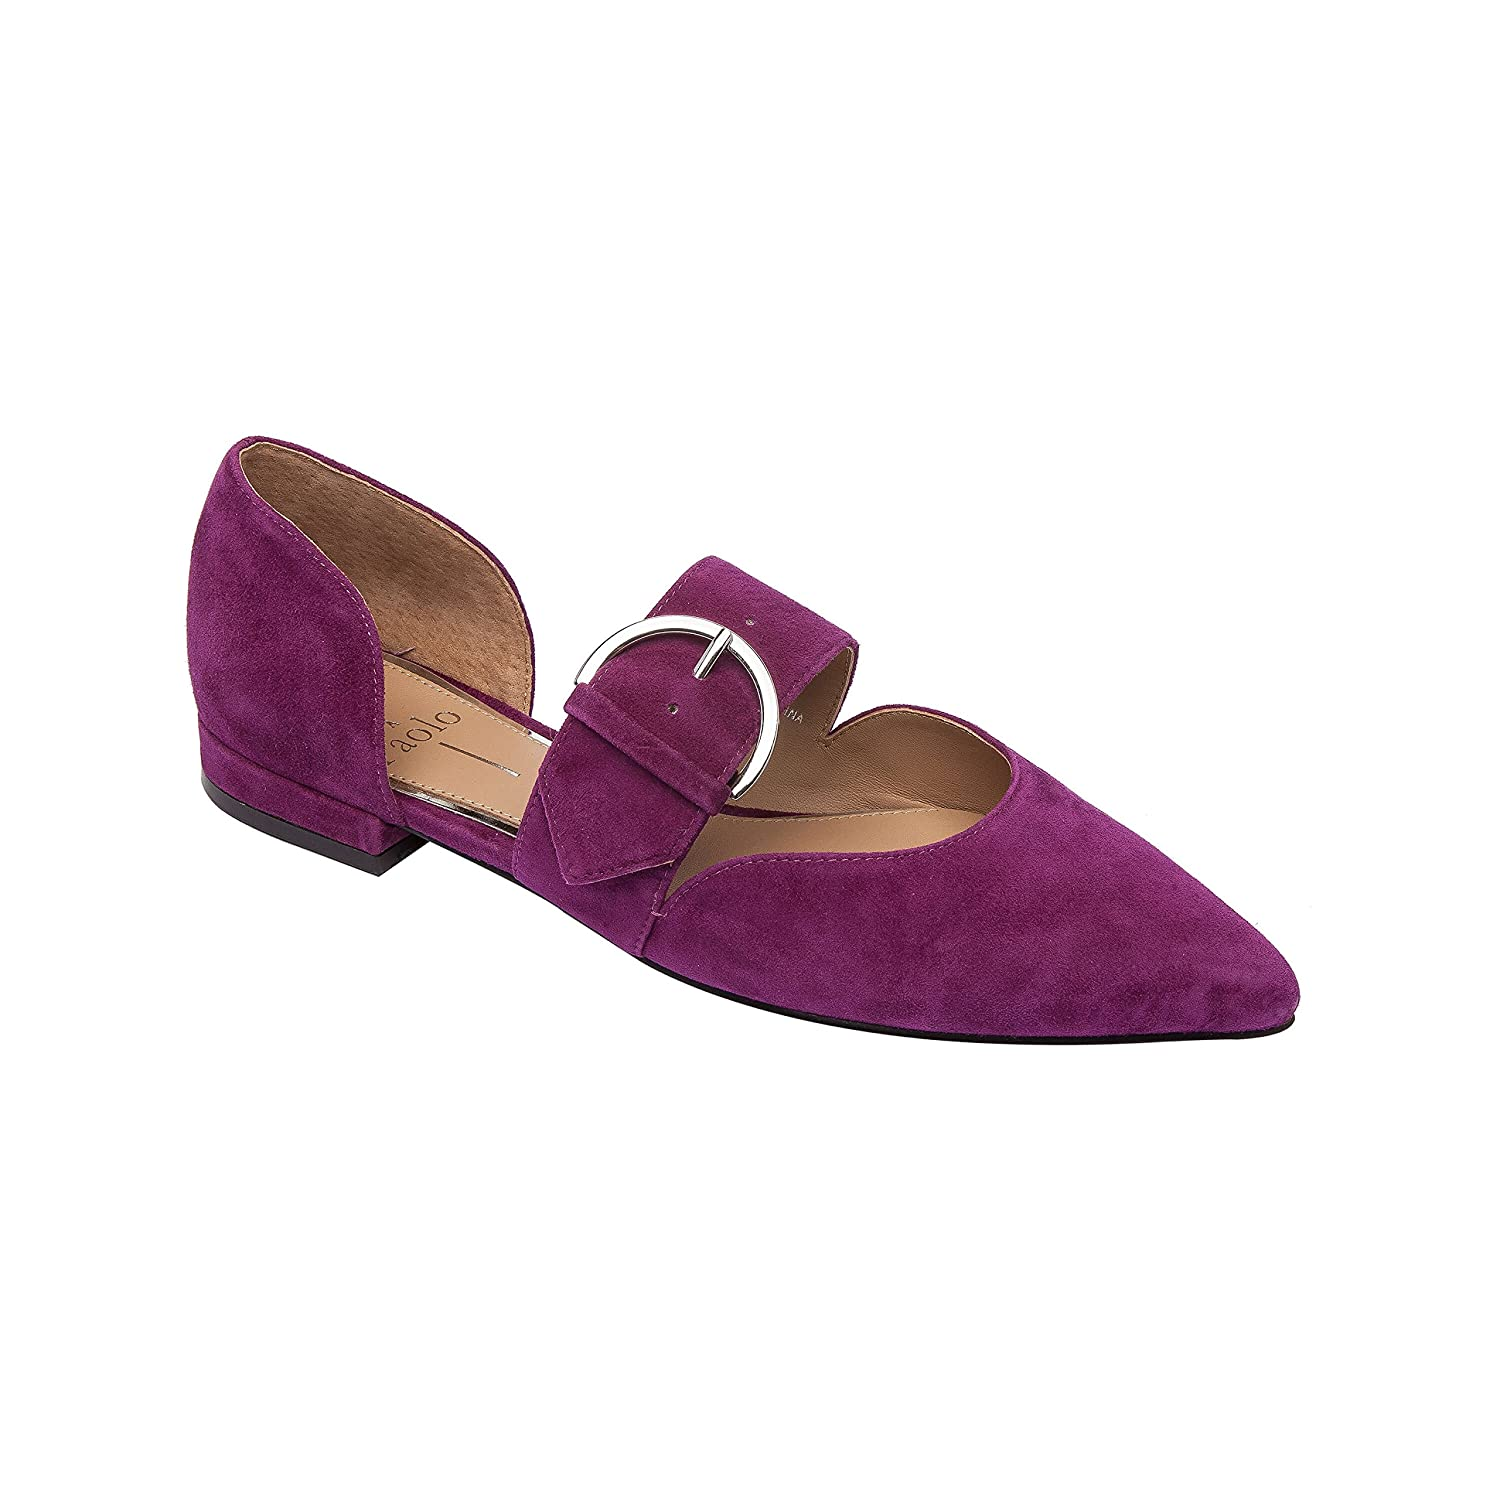 Dean | Women's Two Piece Pointy Toe Comfortable Leather or Suede Ballet Flat B07DM9FMQ7 9 M US|Purple Suede